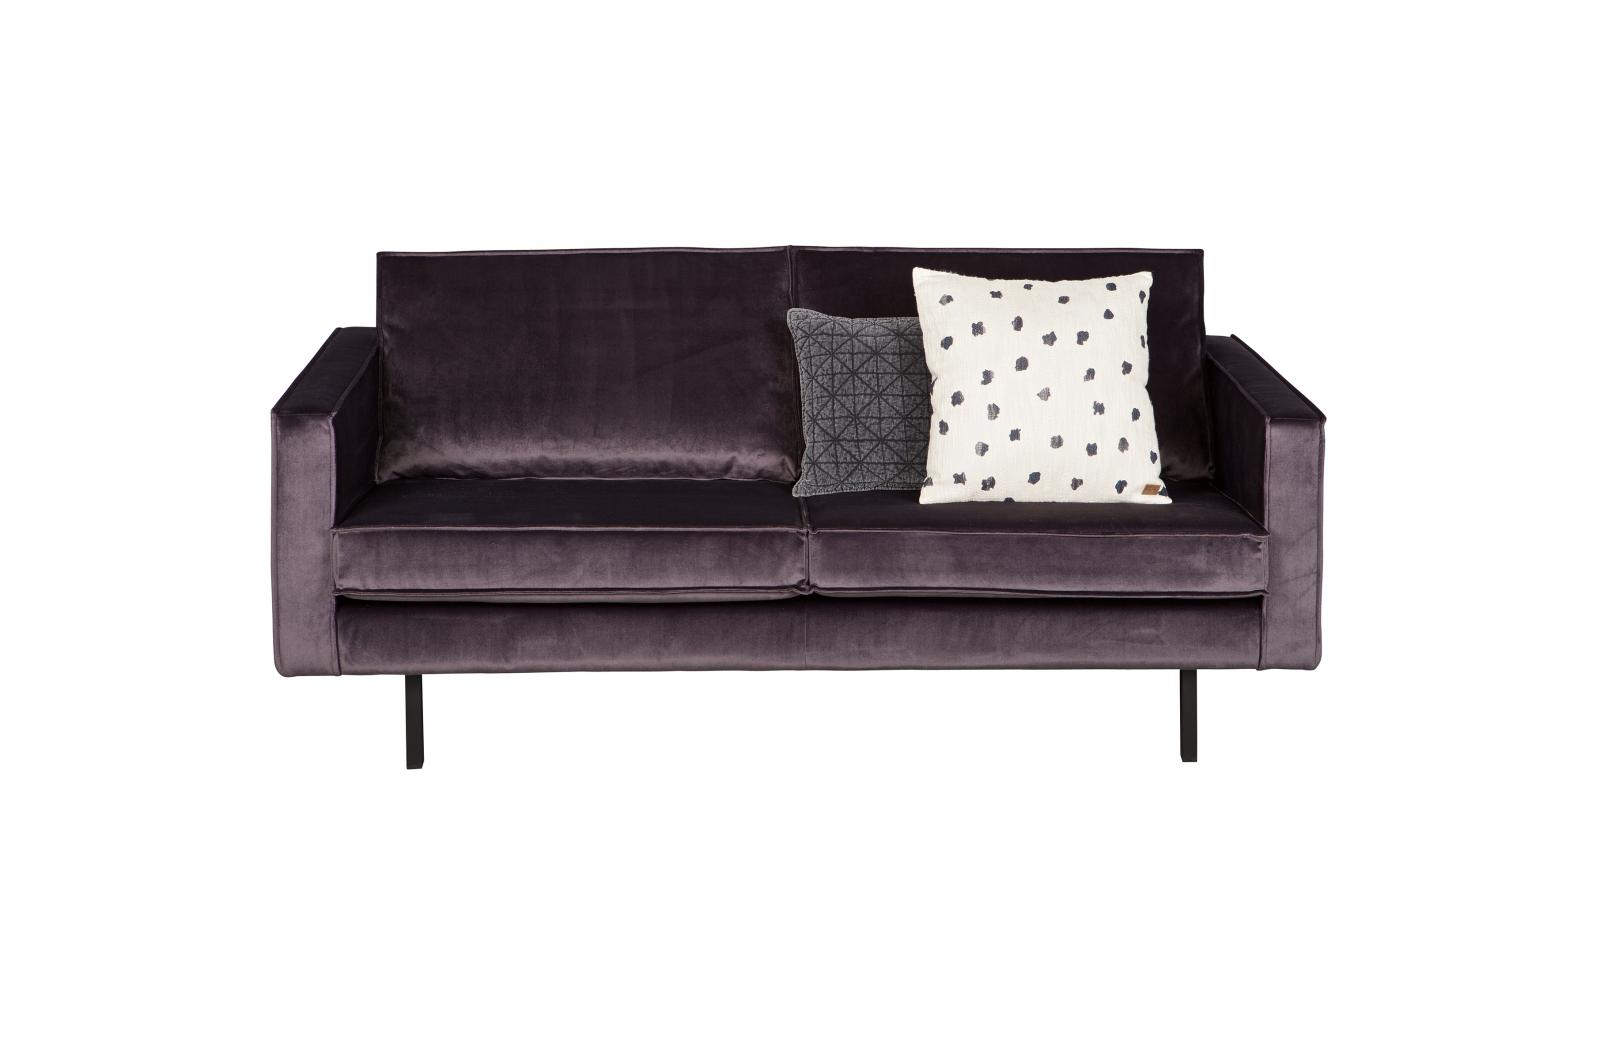 bepurehome rodeo samtsofa 2 5 sitzer grau samt couch. Black Bedroom Furniture Sets. Home Design Ideas